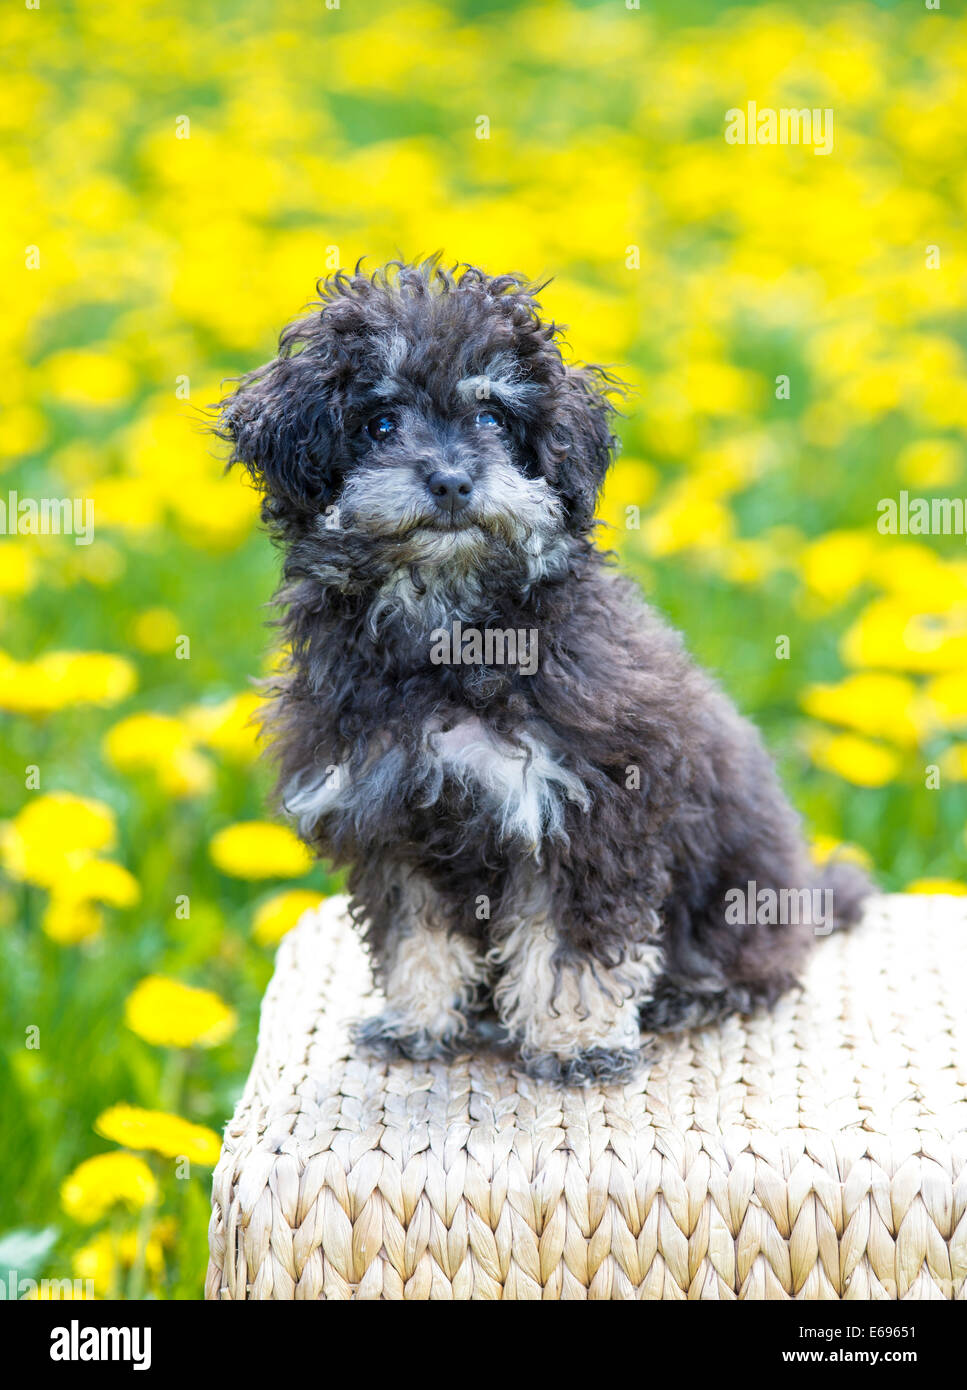 Platinum tea cup poodles for sale dog breeds picture - Toy Poodle Or Teacup Poodle Black And Tan Austria Stock Image